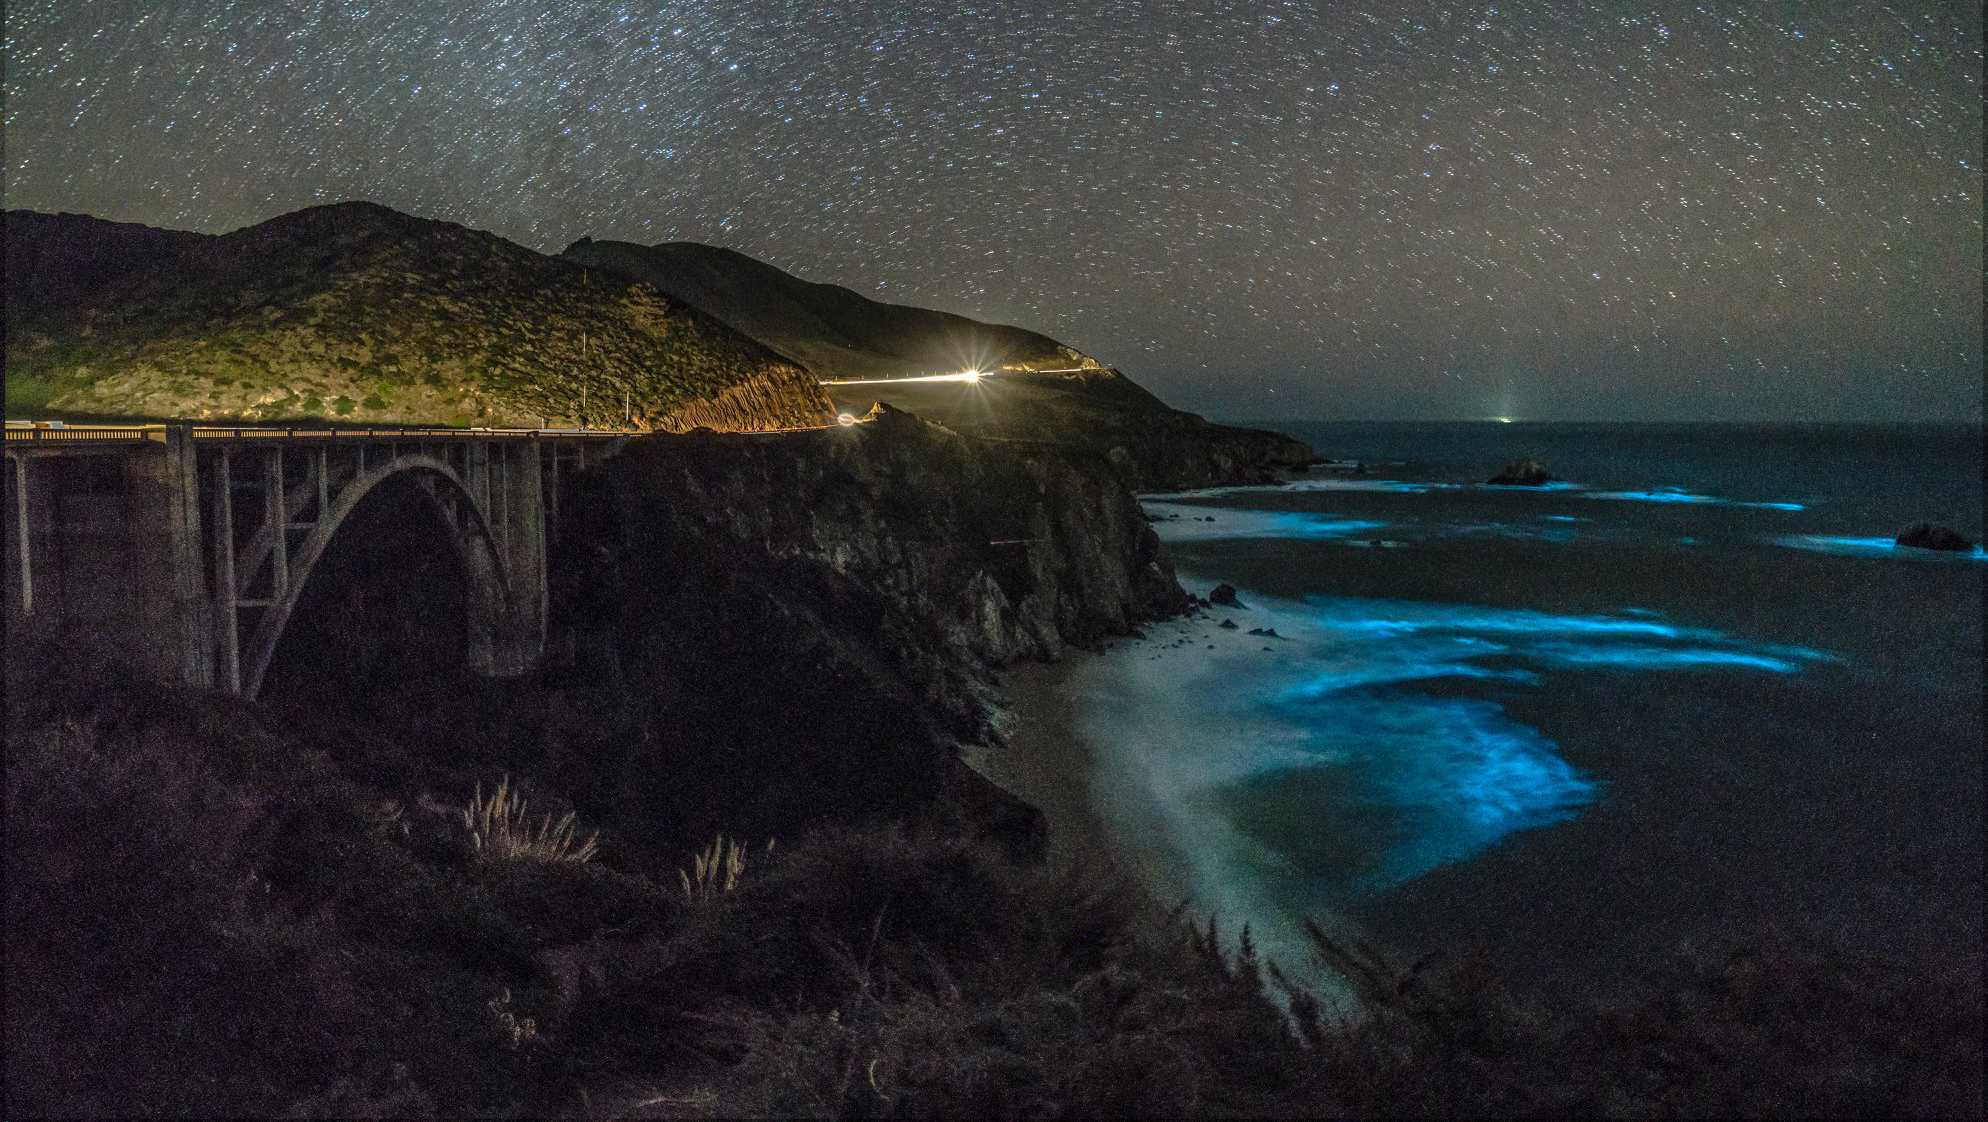 Bioluminescent waves in Big Sur (Feb. 5, 2018)